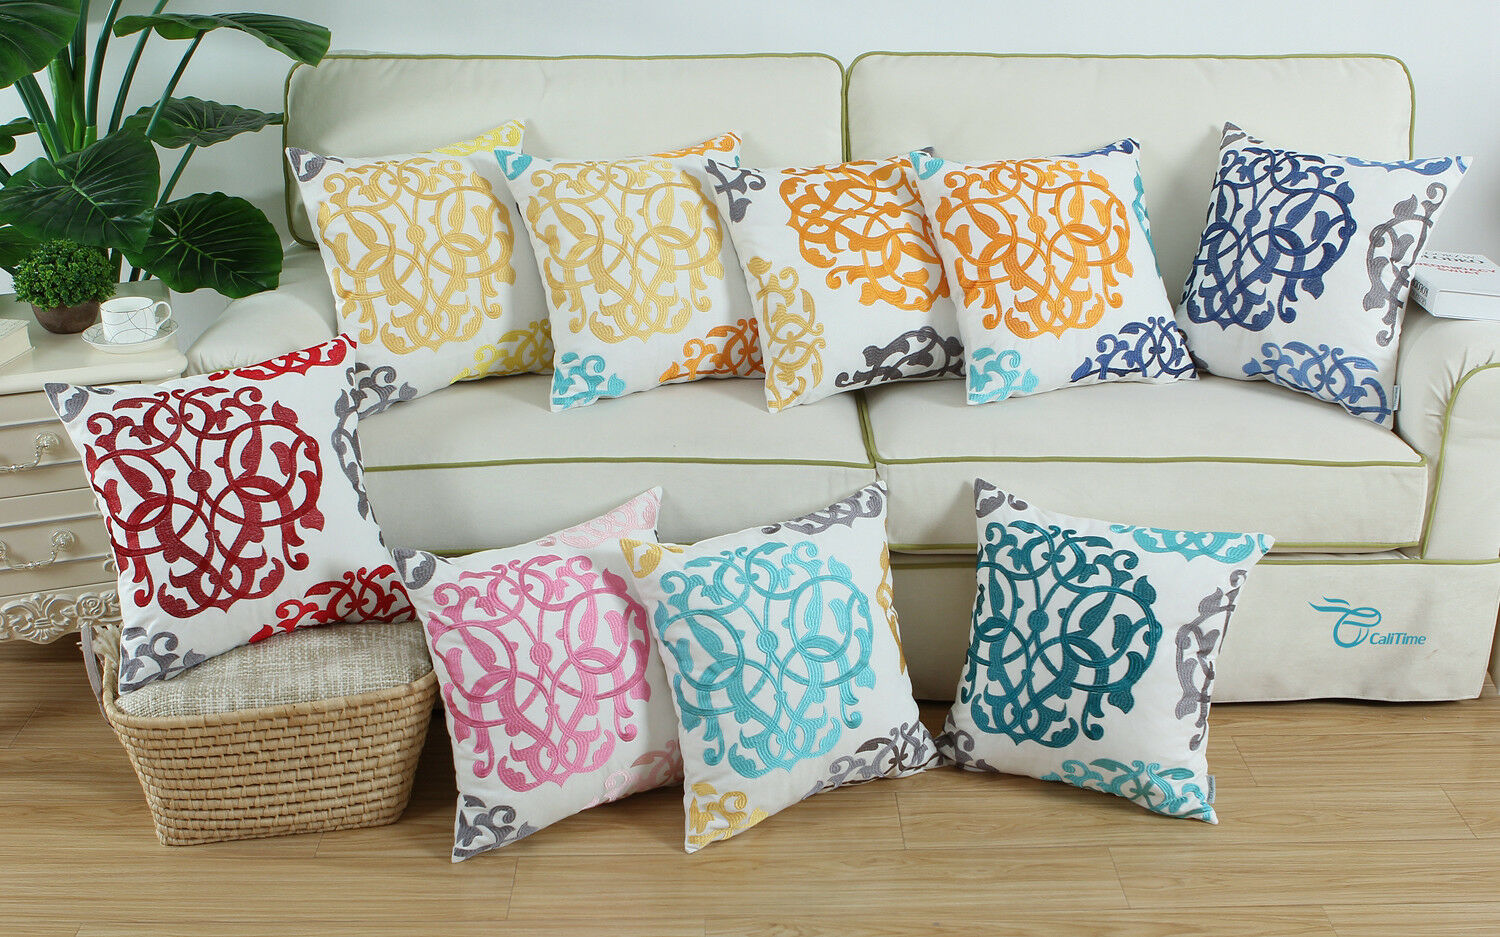 CaliTime Floral Embroidered Throw Cushion Covers Pillow Shel